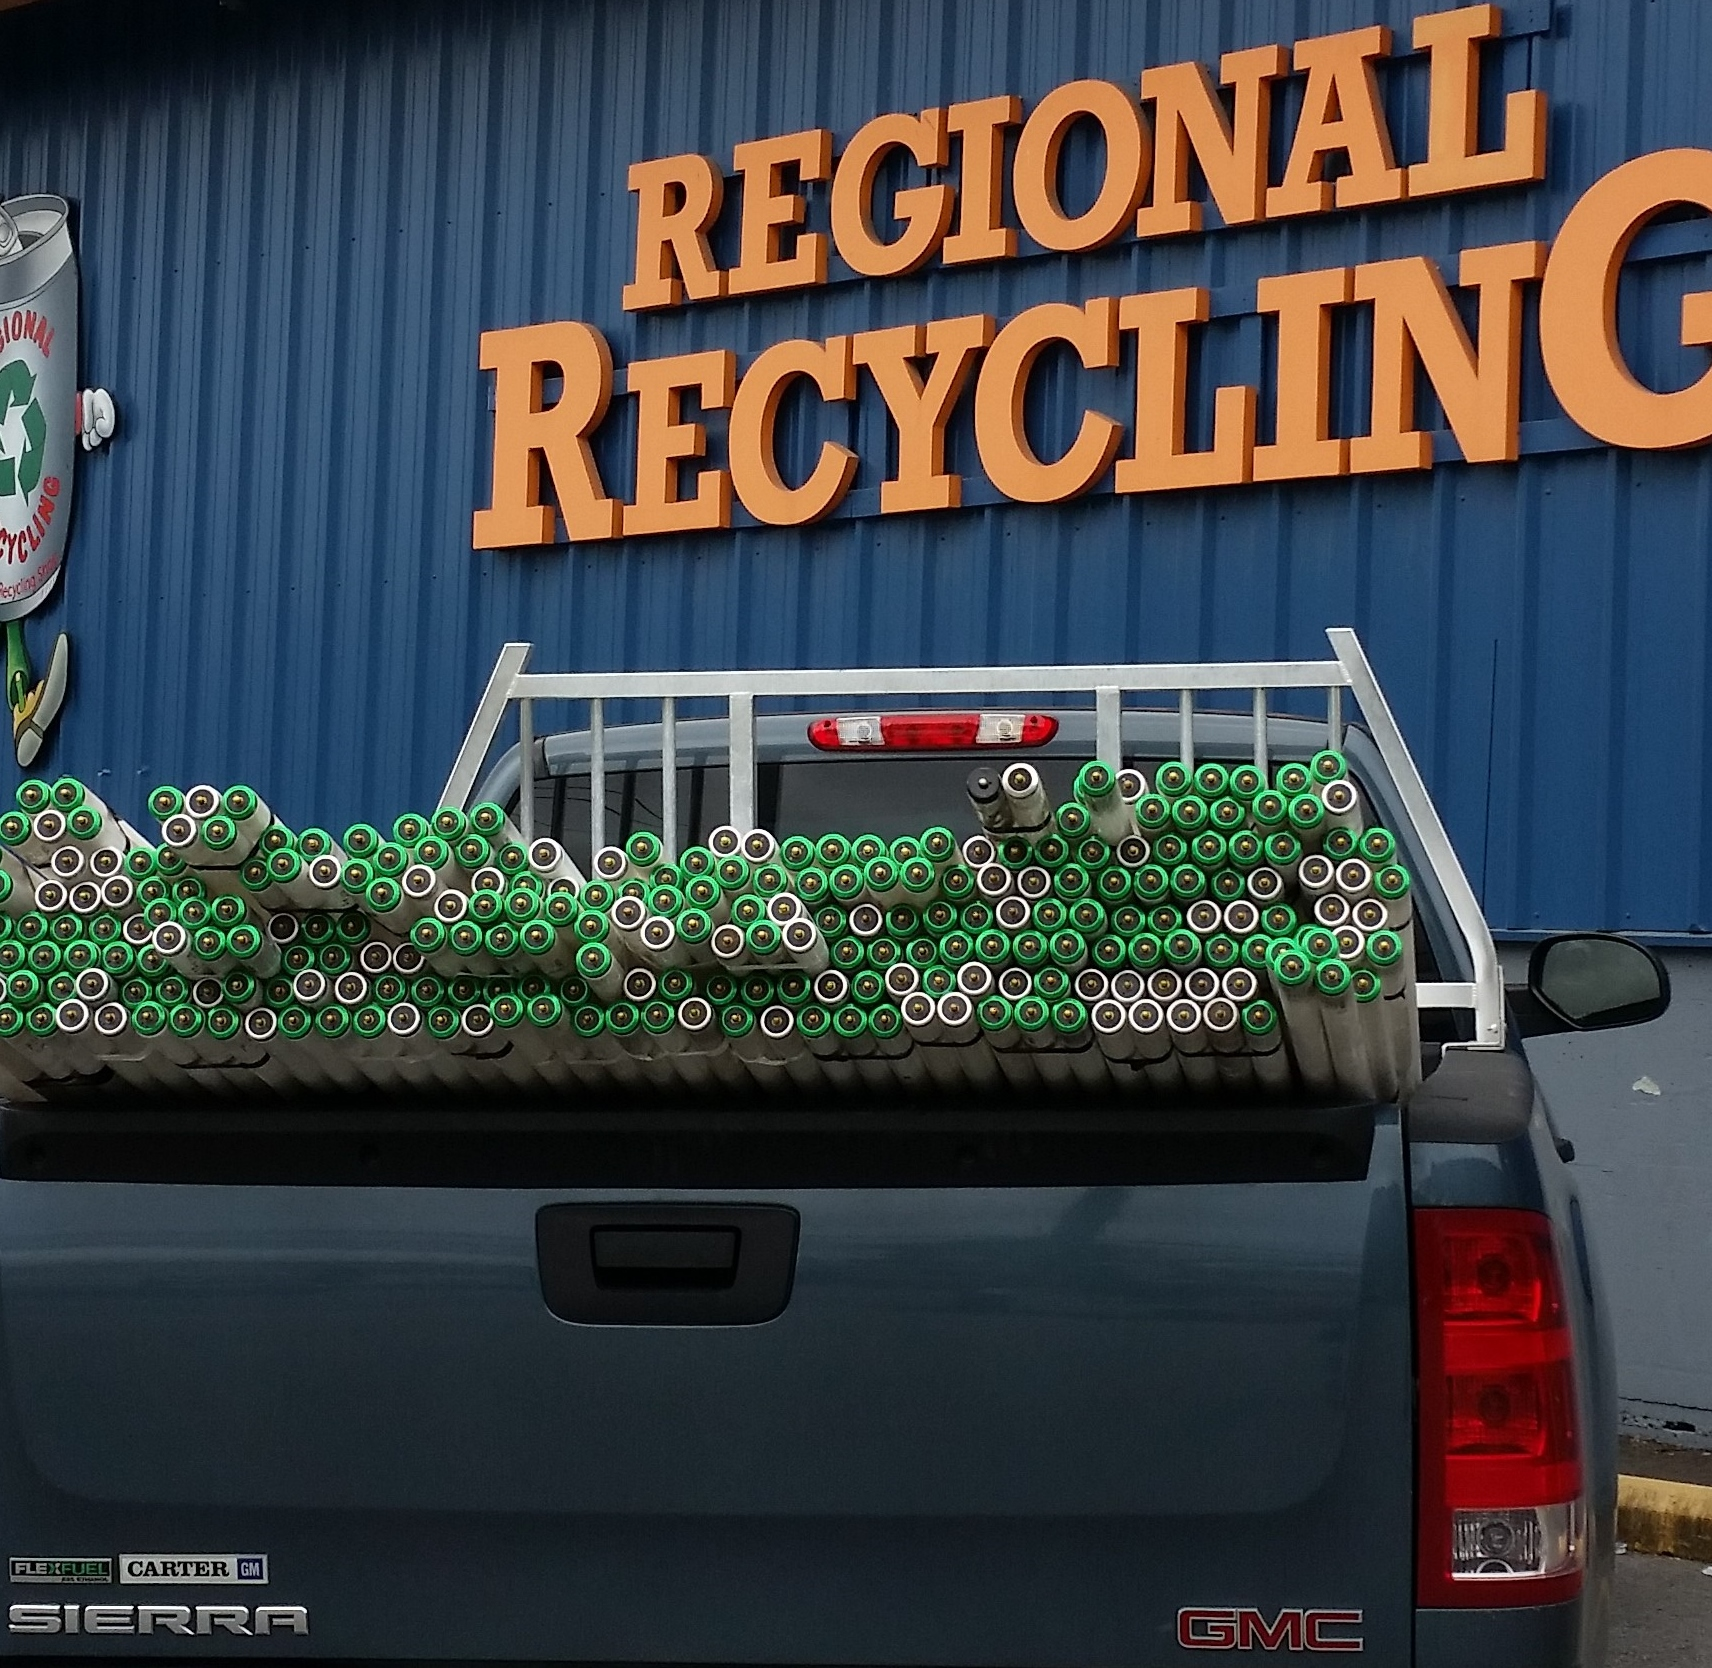 Fitterer Electric Recycles